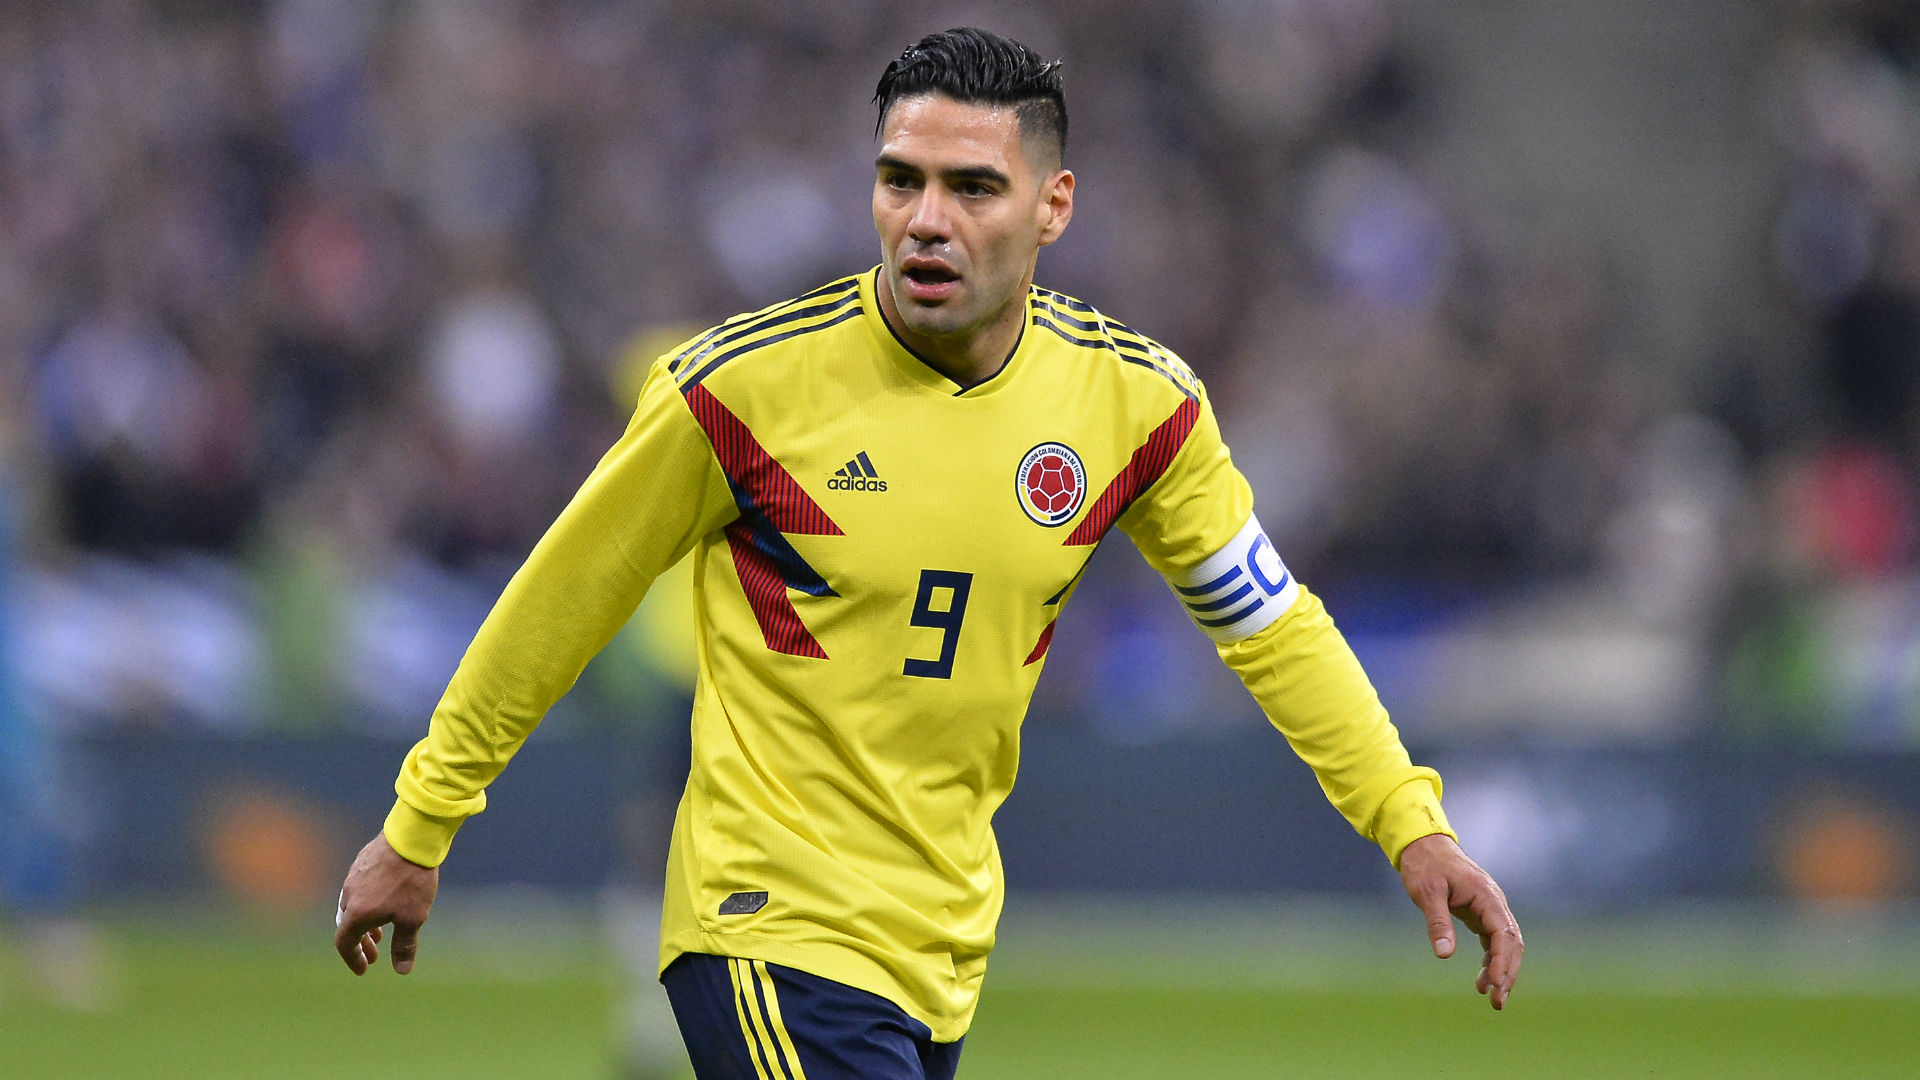 Falcao flattered by Milan interest as summer move is mooted